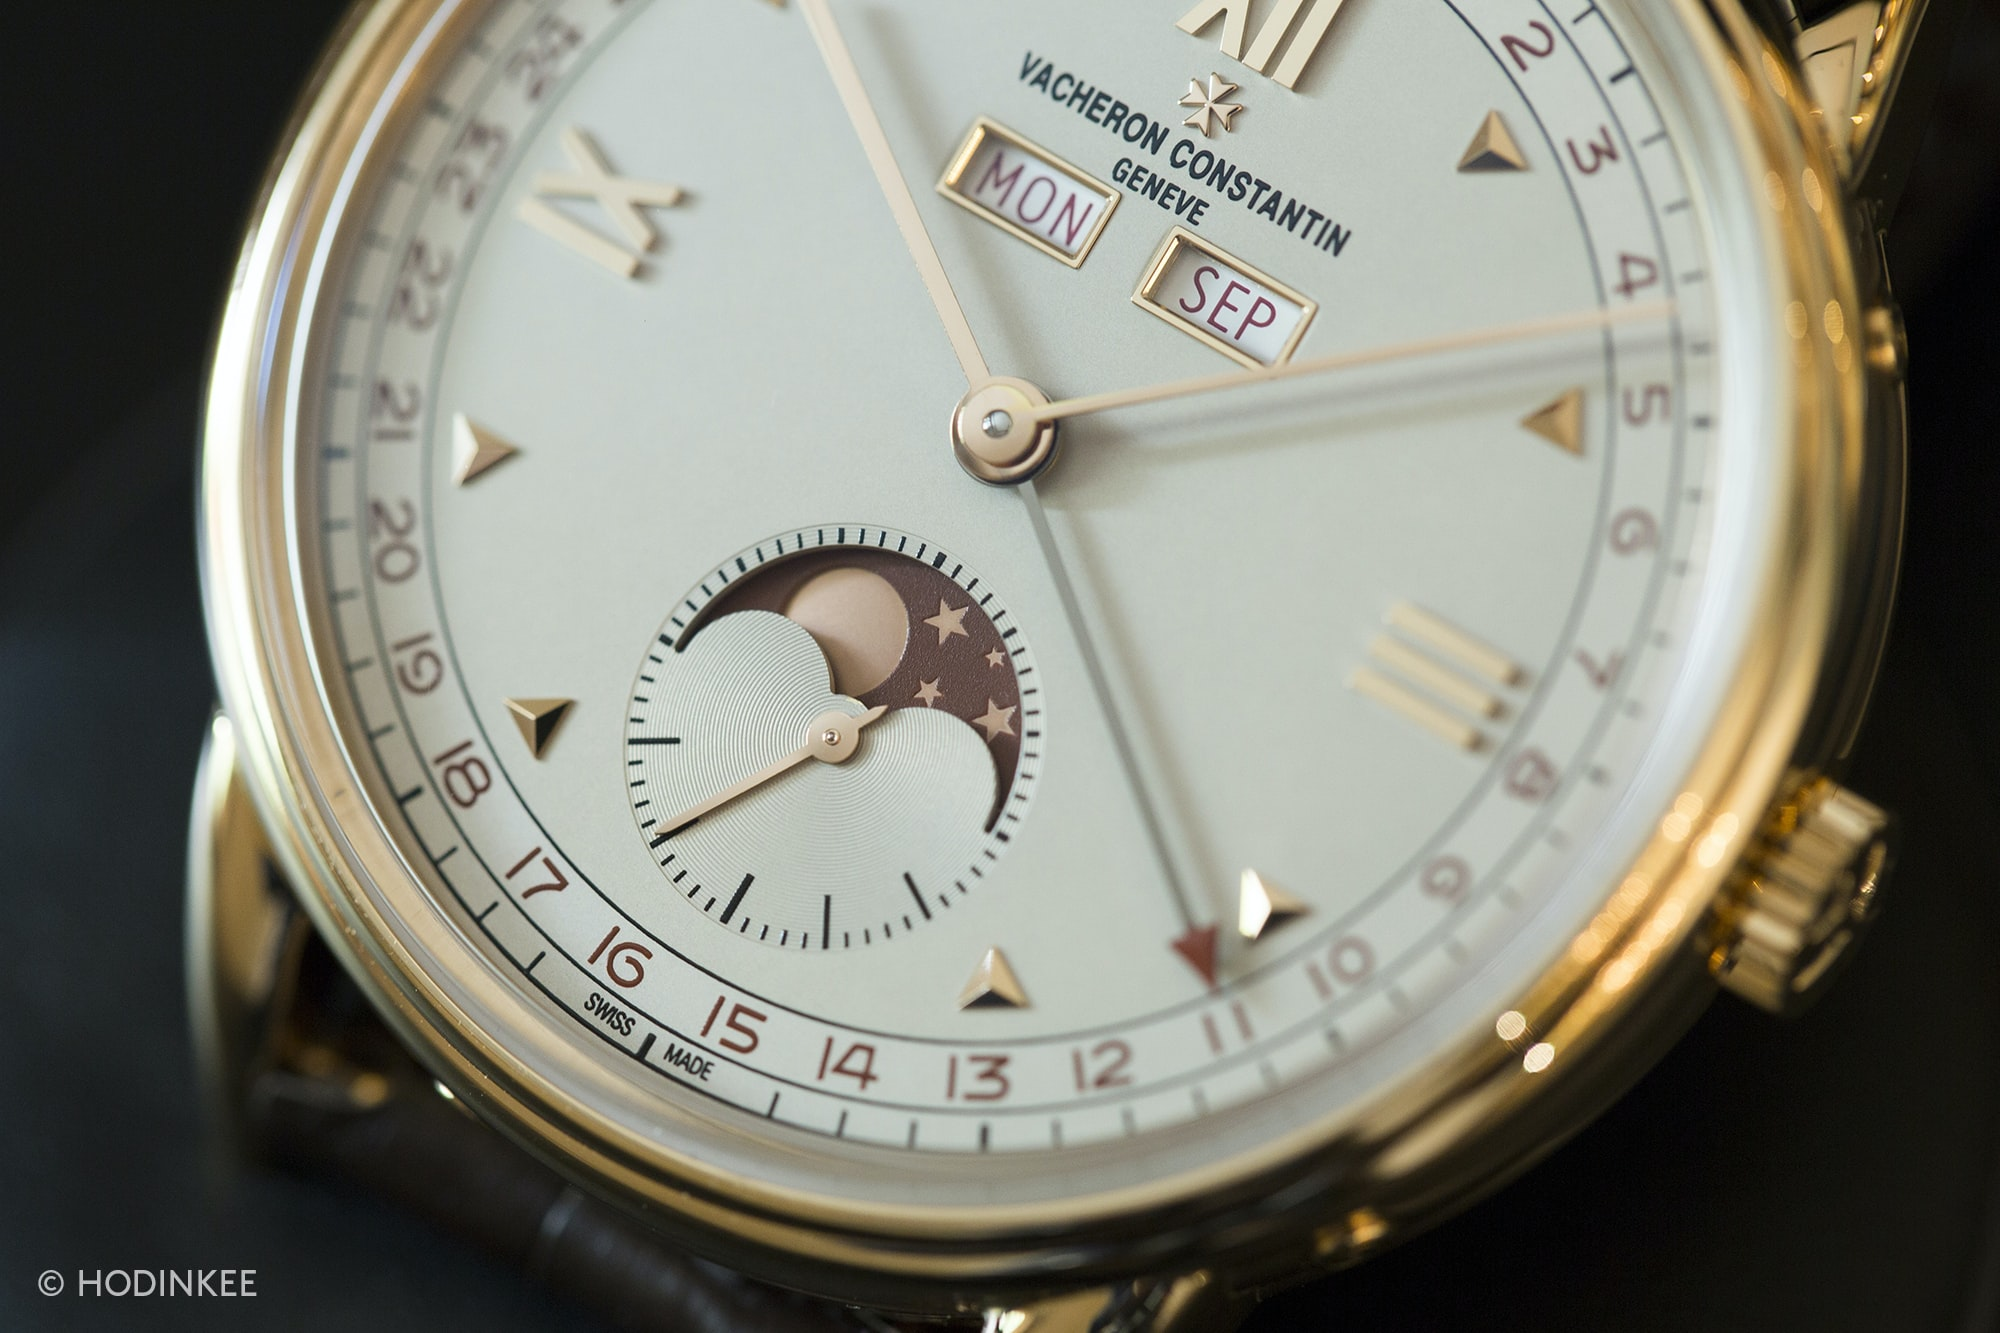 vacheron historiques 1948 dial  Introducing: The New Vacheron Constantin Historiques: Triple Calendrier 1942 And 1948, And American 1921 Small (Exclusive Live Pics) 3H0A2933 copy